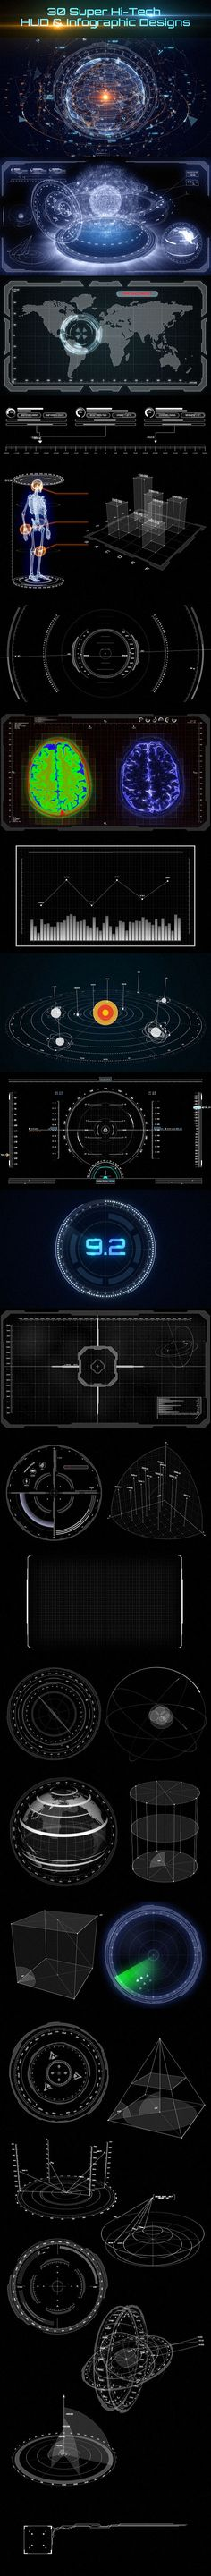 https://www.behance.net/gallery/24048515/30-Super-Hi-Tech-HUD-Infographic-Designs